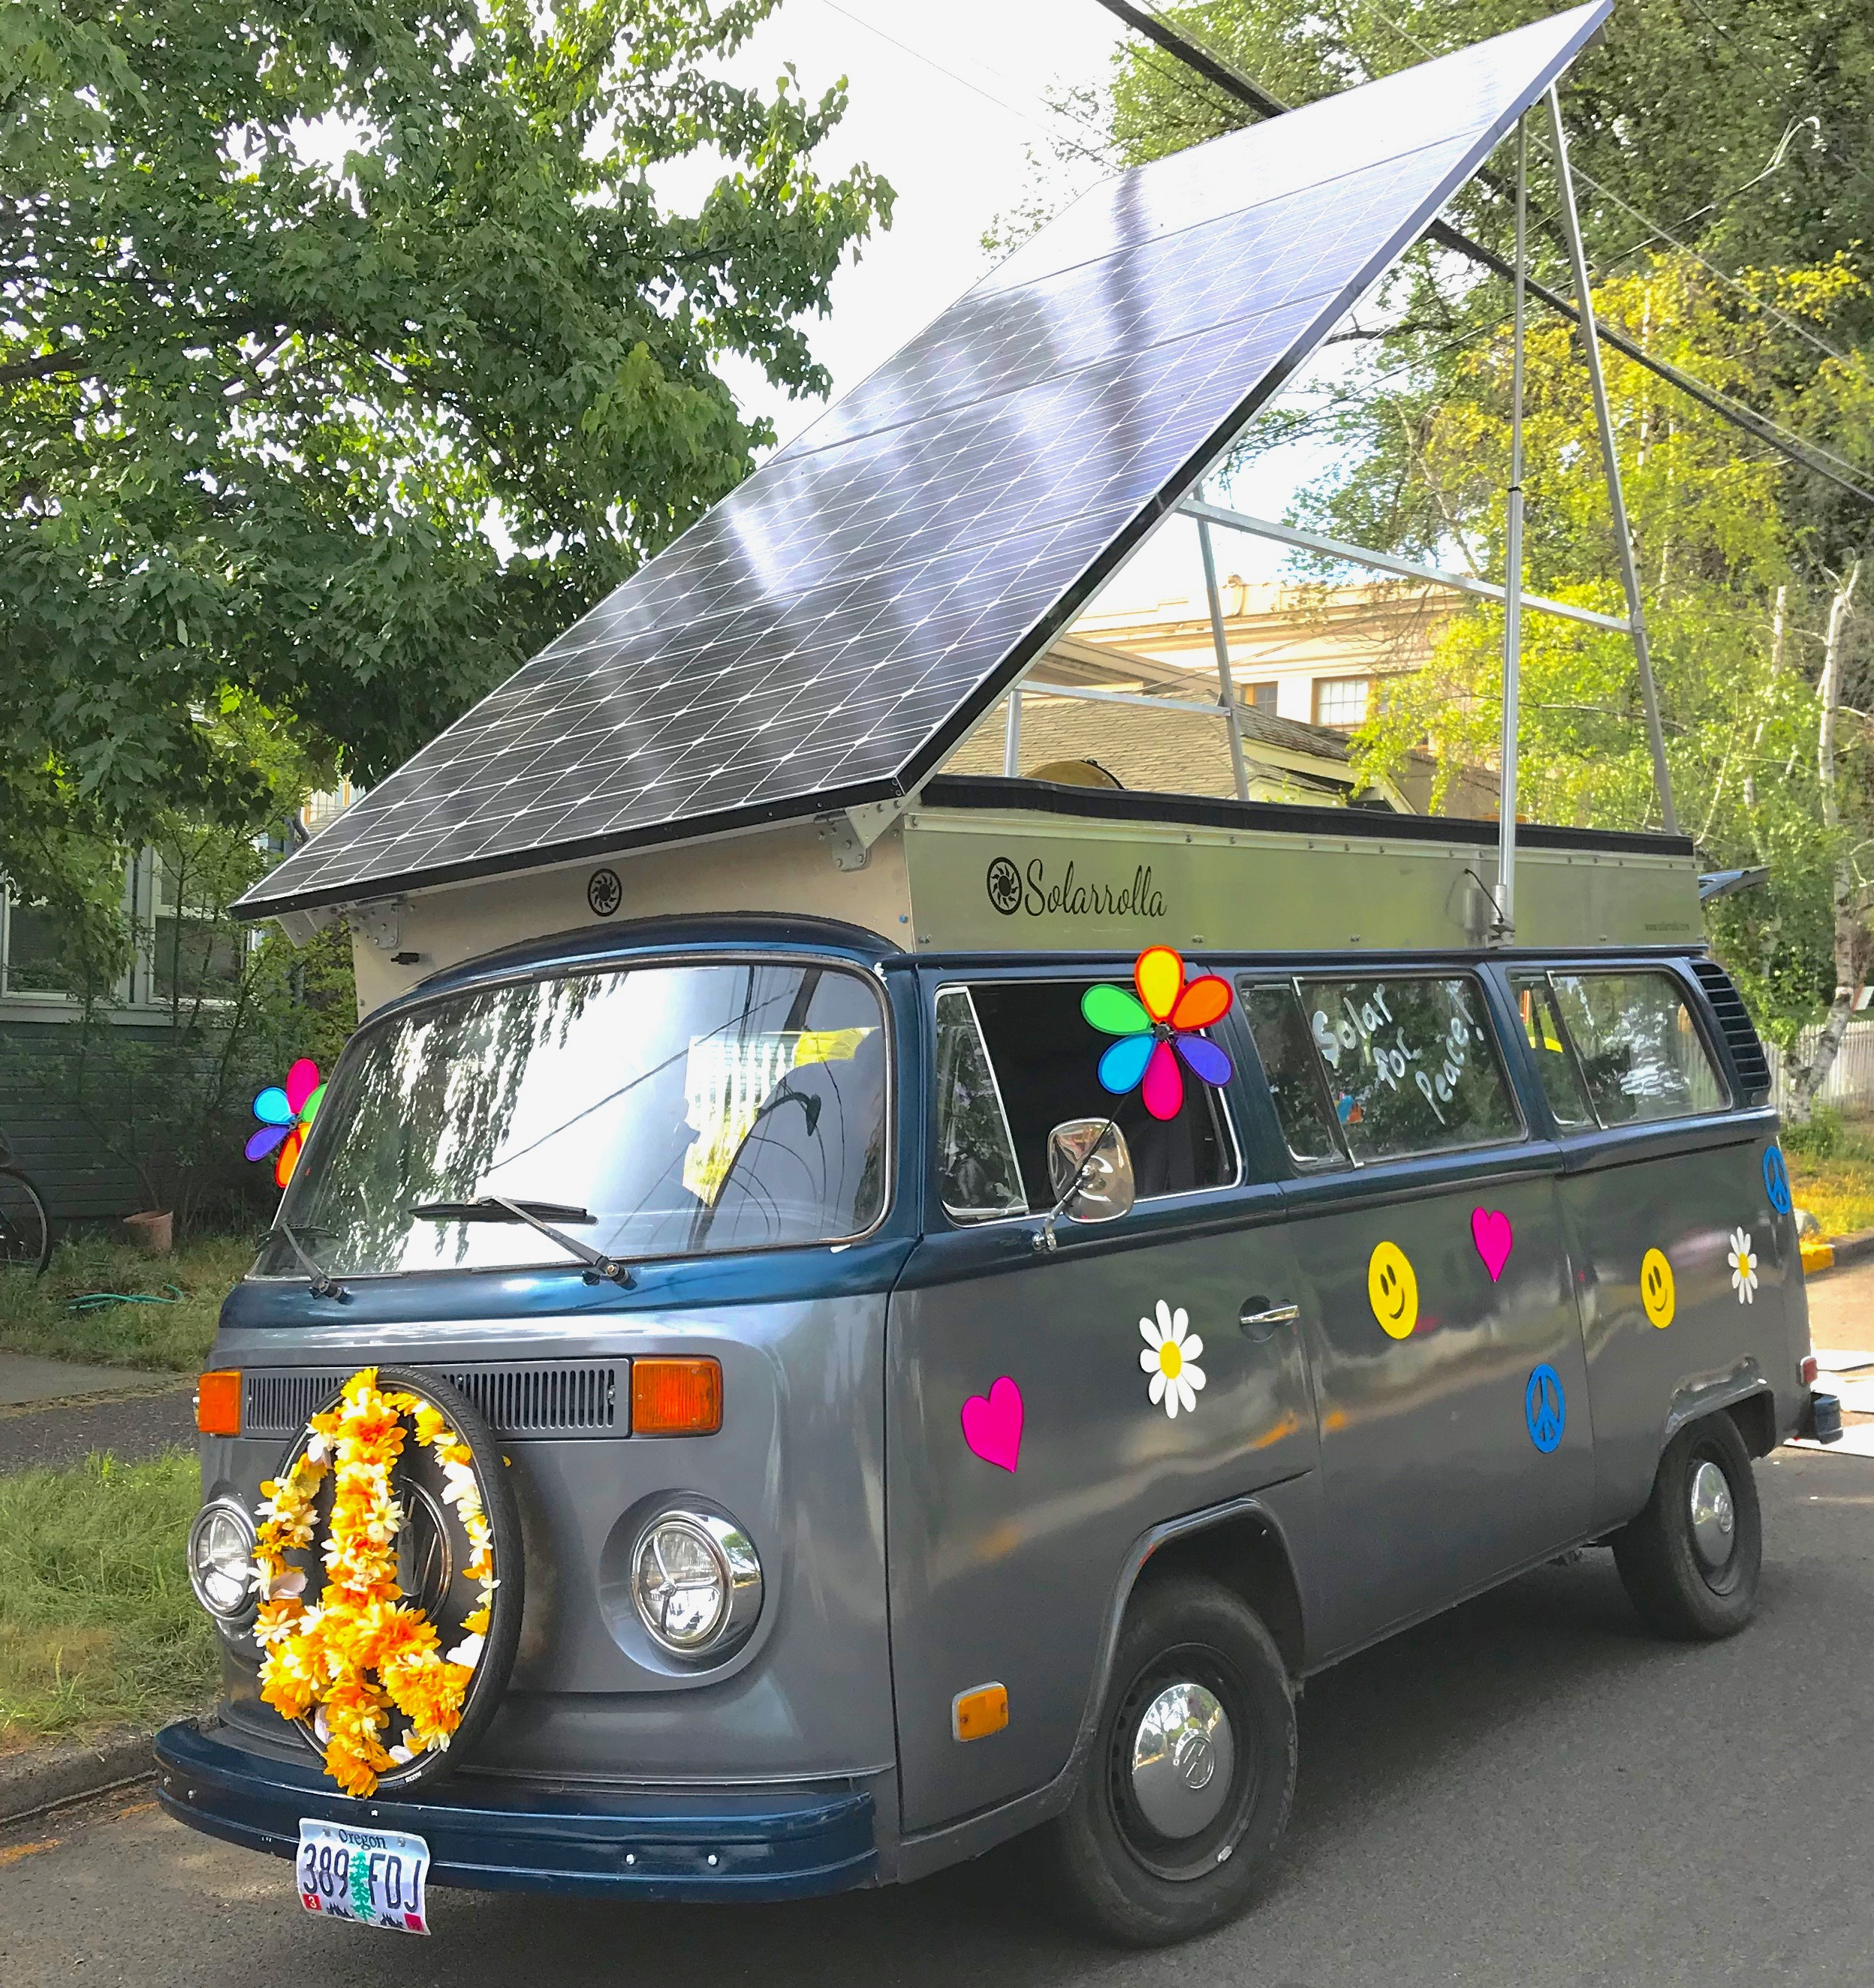 Brett Belan's solar-powered VW van decorated for a parade. (Courtesy photo)